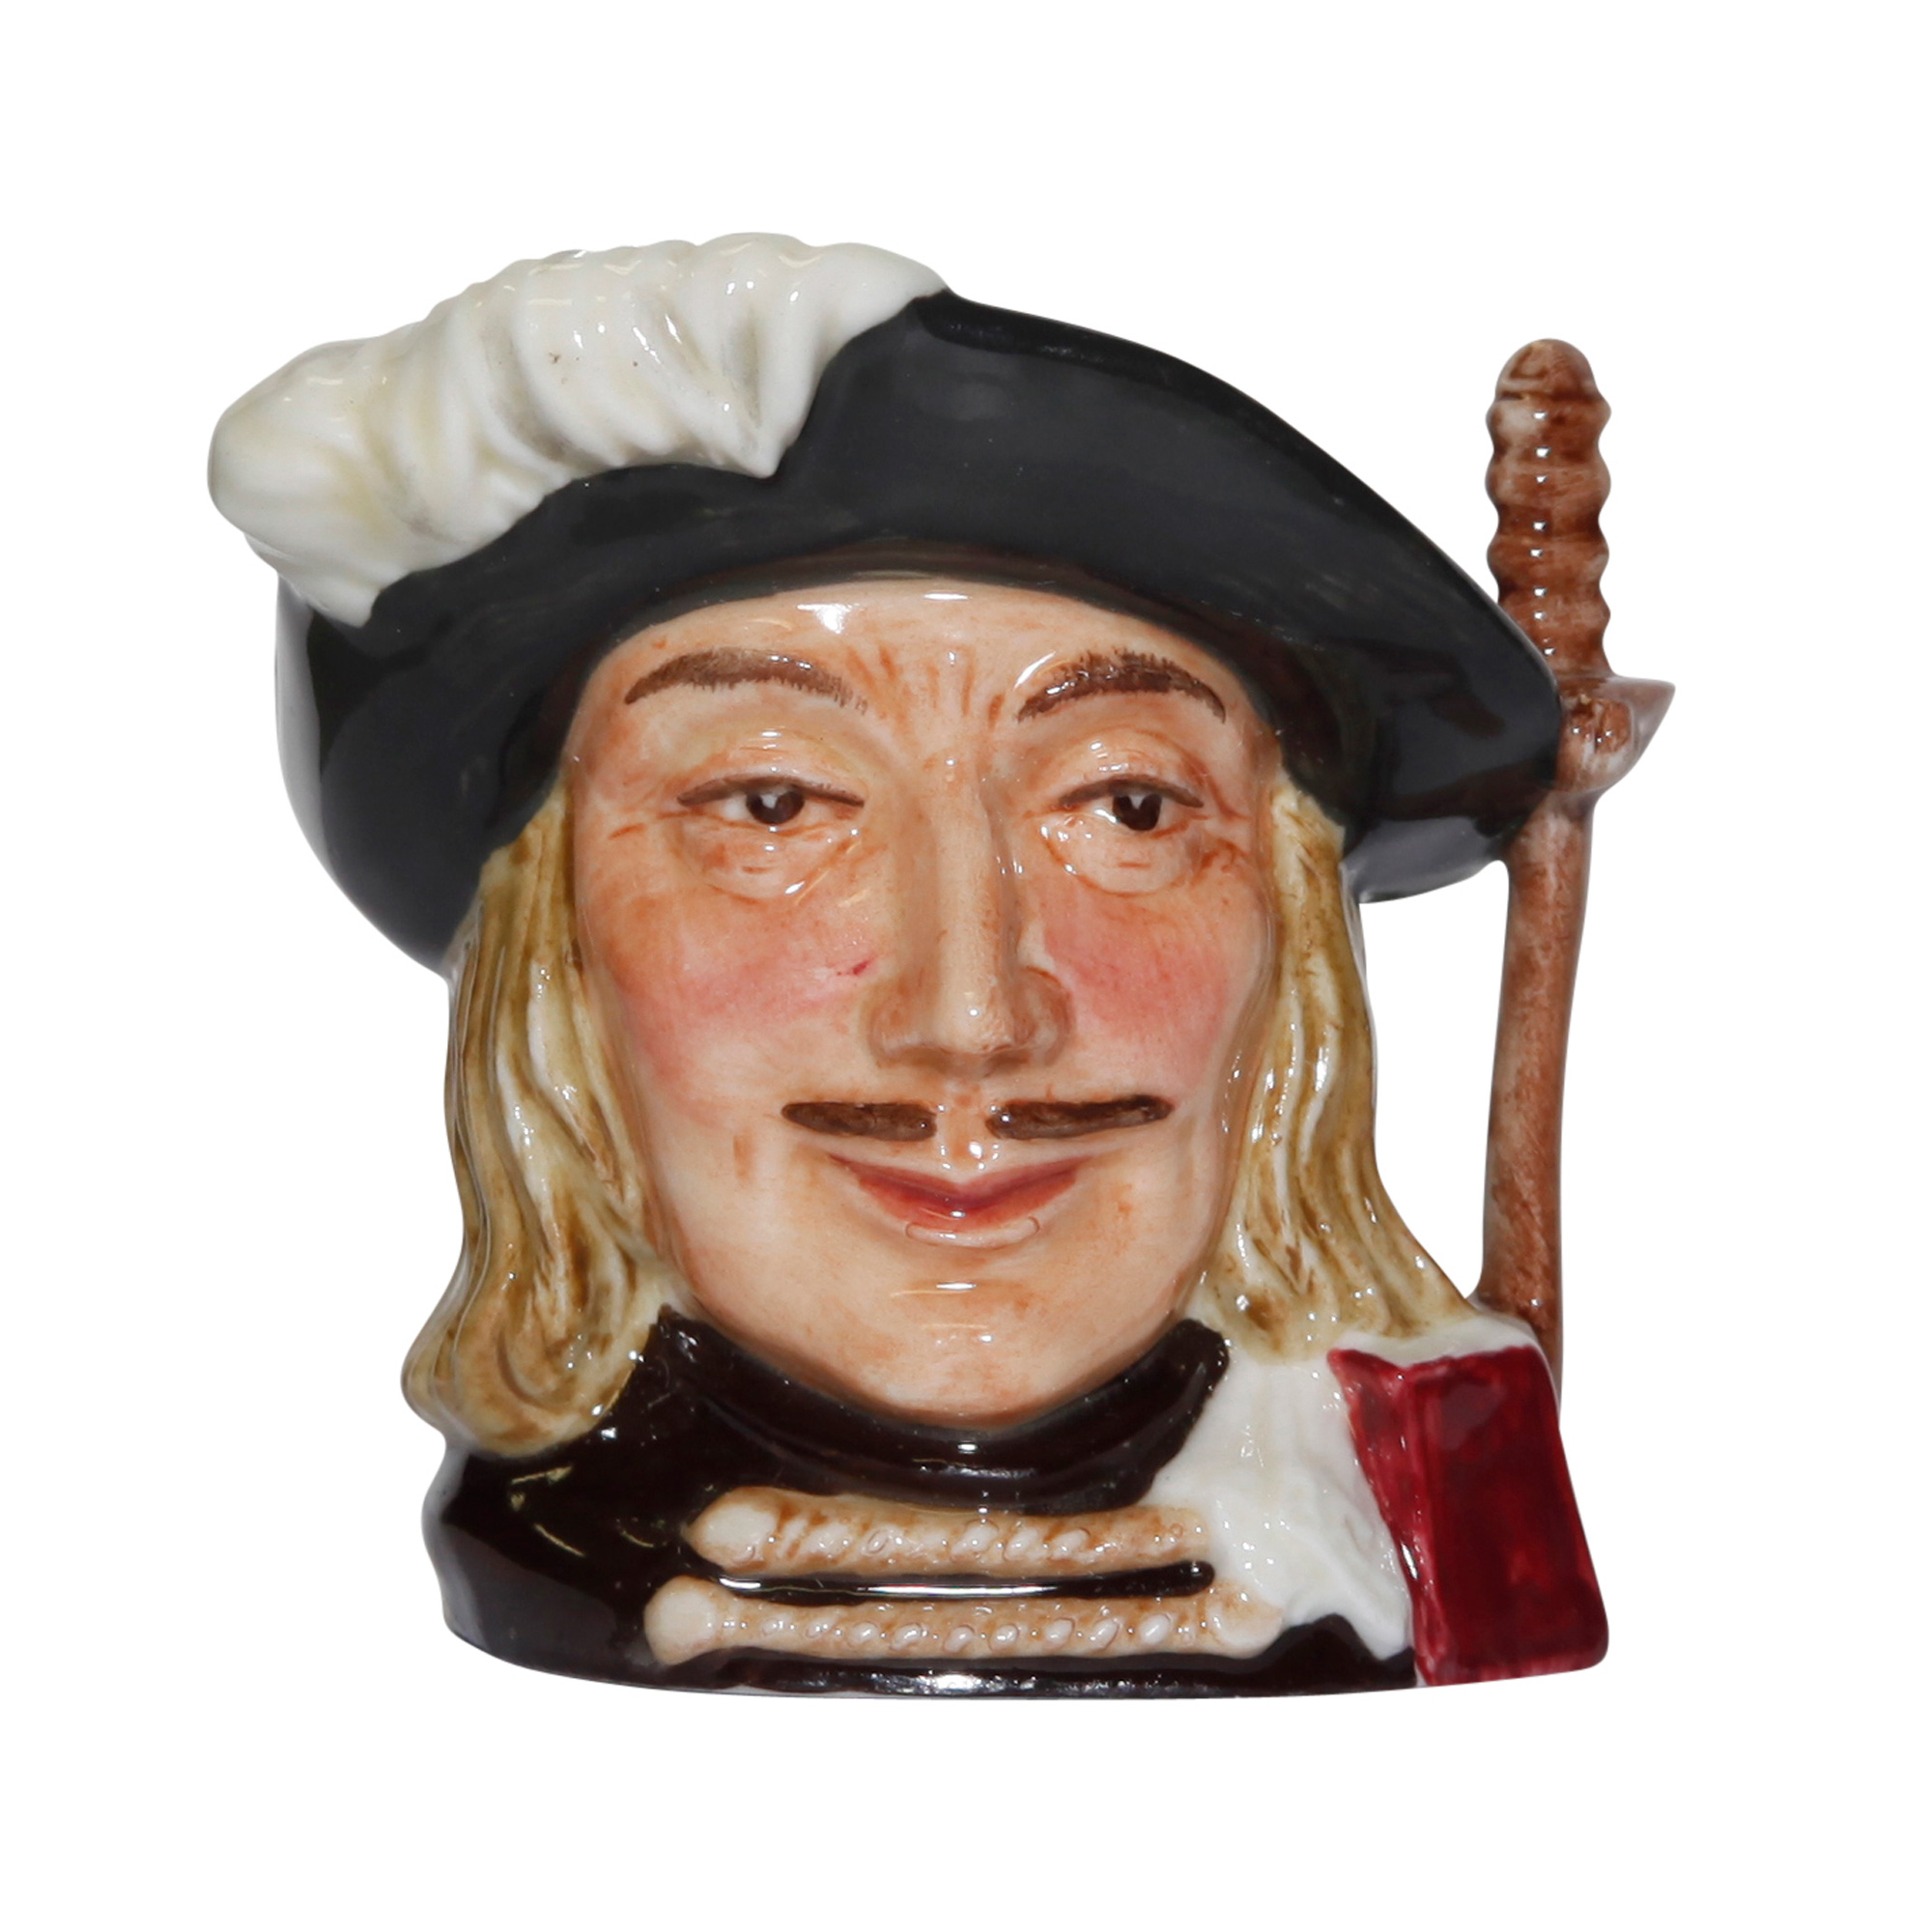 Aramis (Bone China) D6508BC - Miniature - Royal Doulton Character Jug